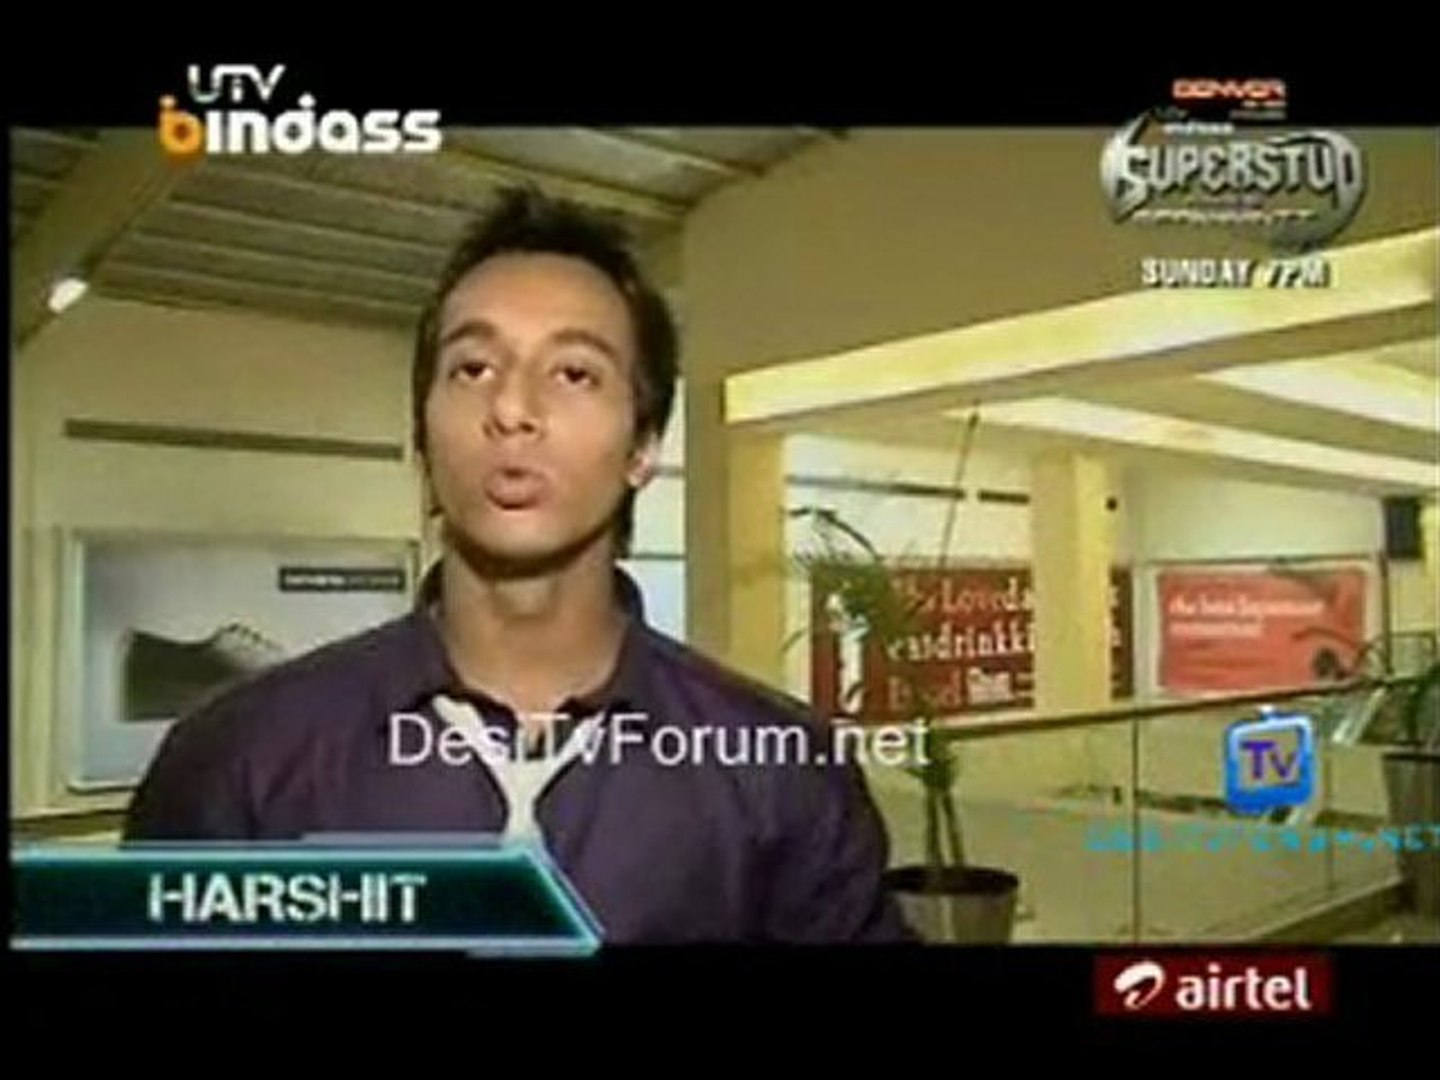 Bindass Superstud [6th Episode] - 7th August 2011 2011 Video pt4